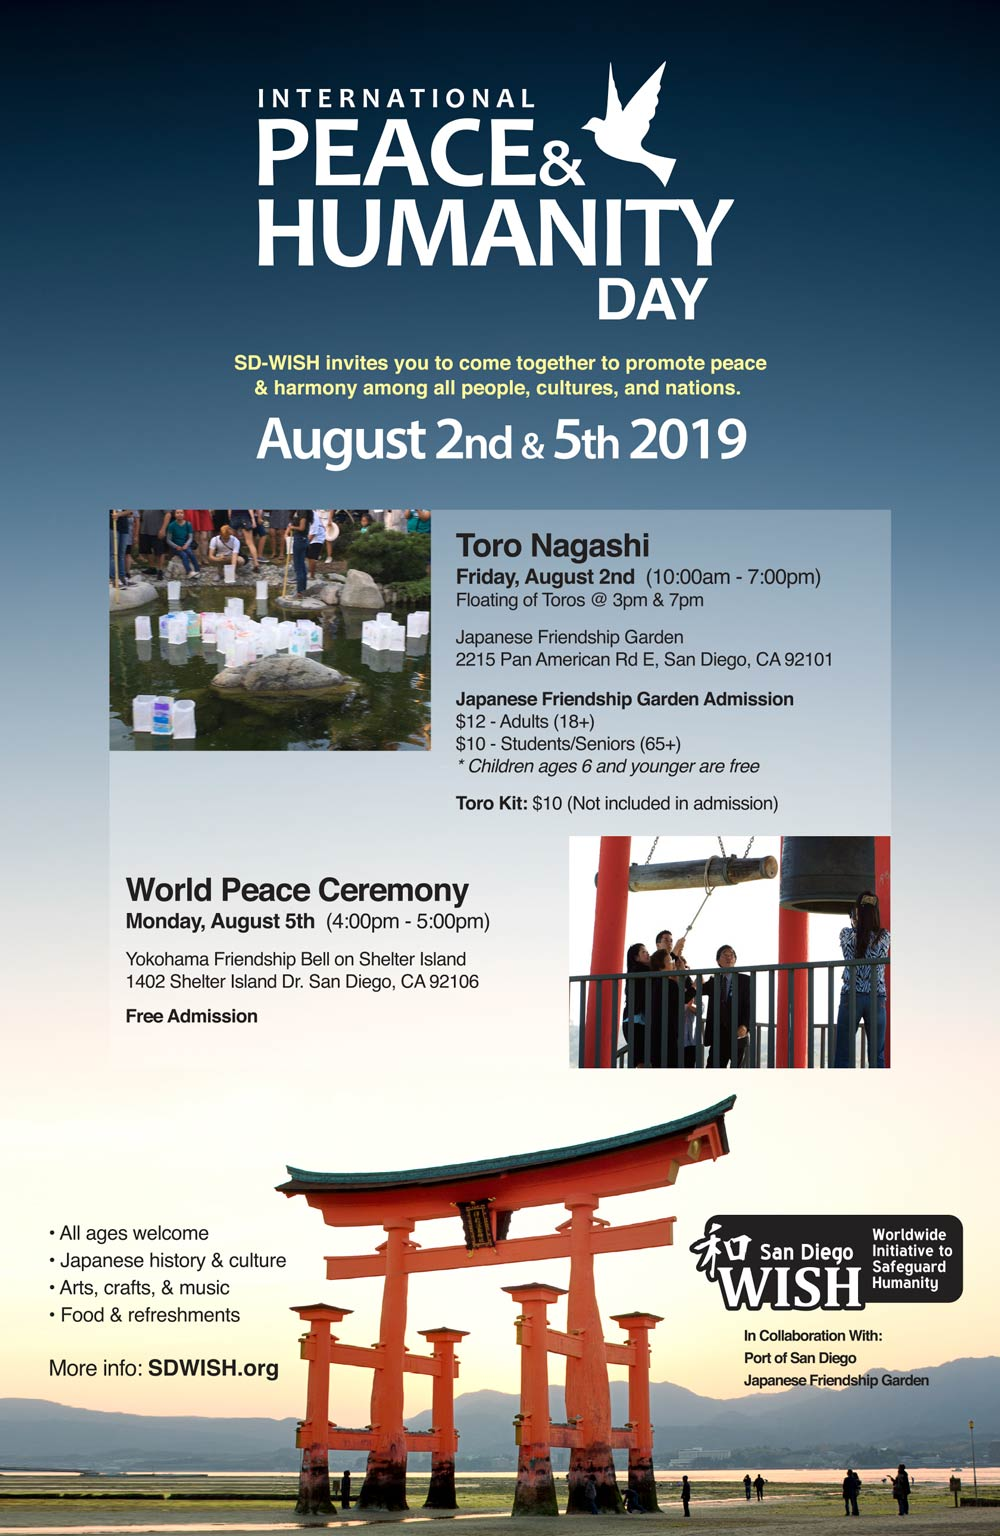 SD-WISH International Peace & Humanity Day 2019